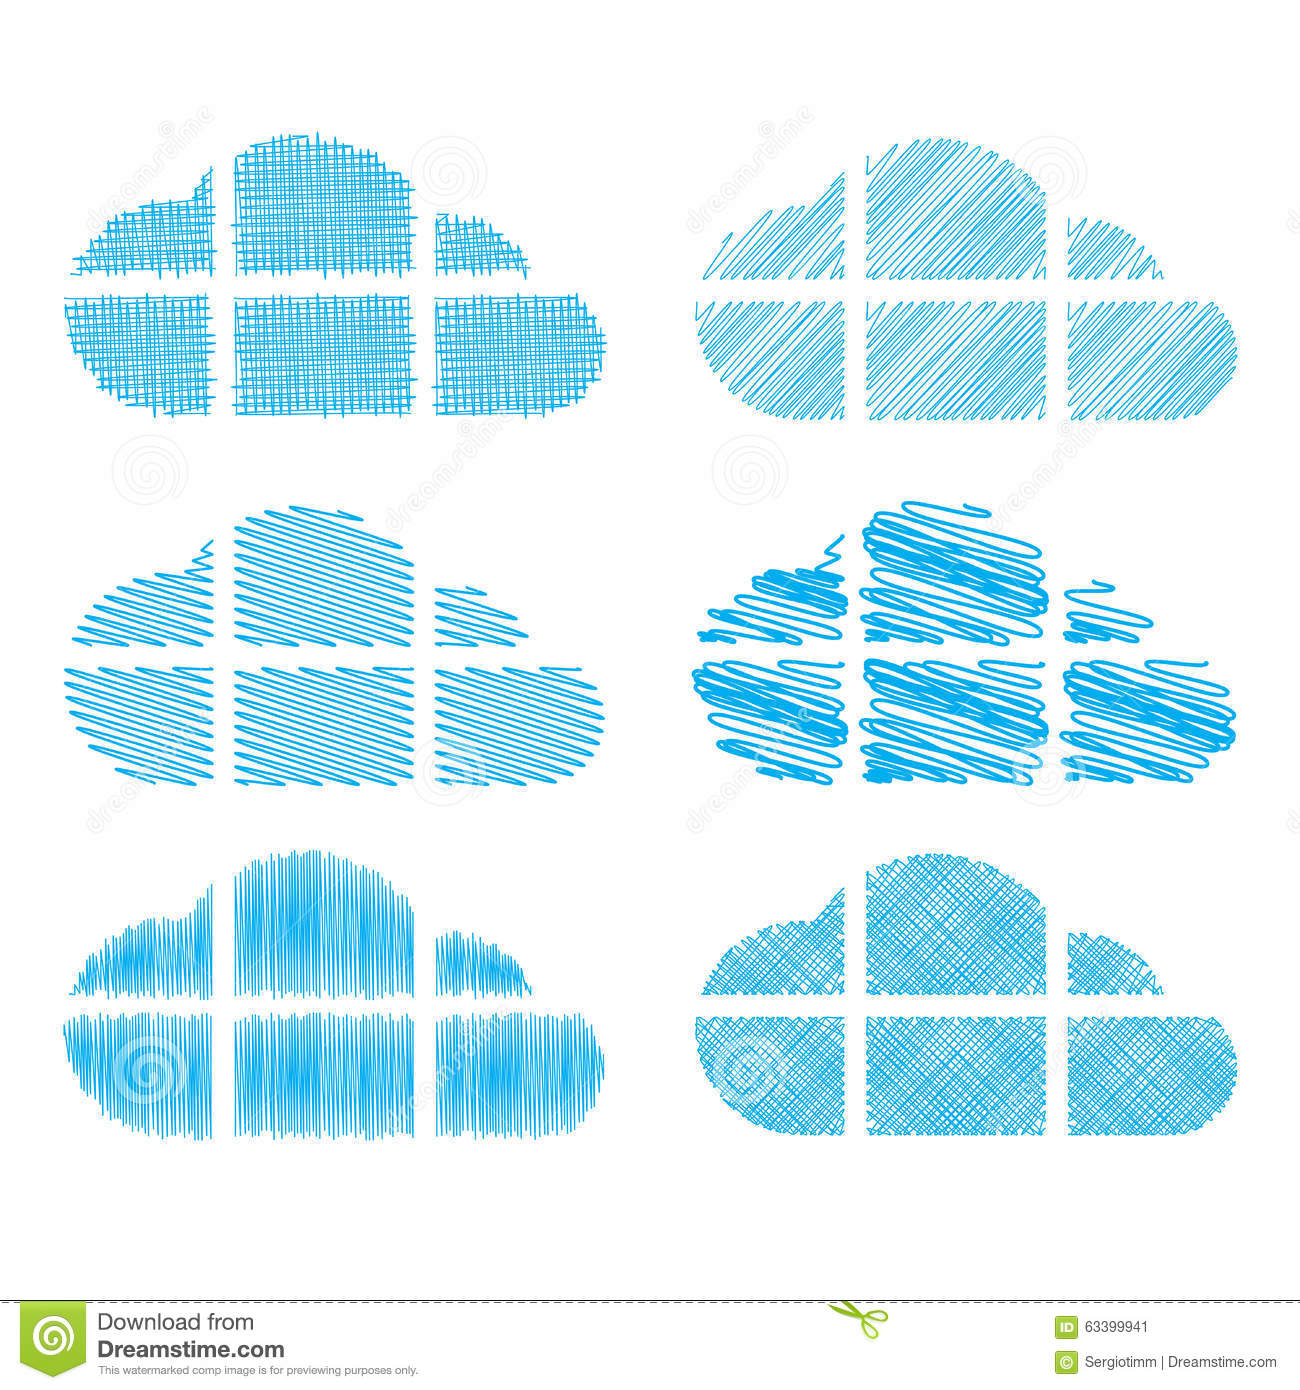 Set Of Vector Clouds In The Form Of Windows With Different Types Of Pencil Shading Stock Vector Illustration Of Element Doodle 63399941